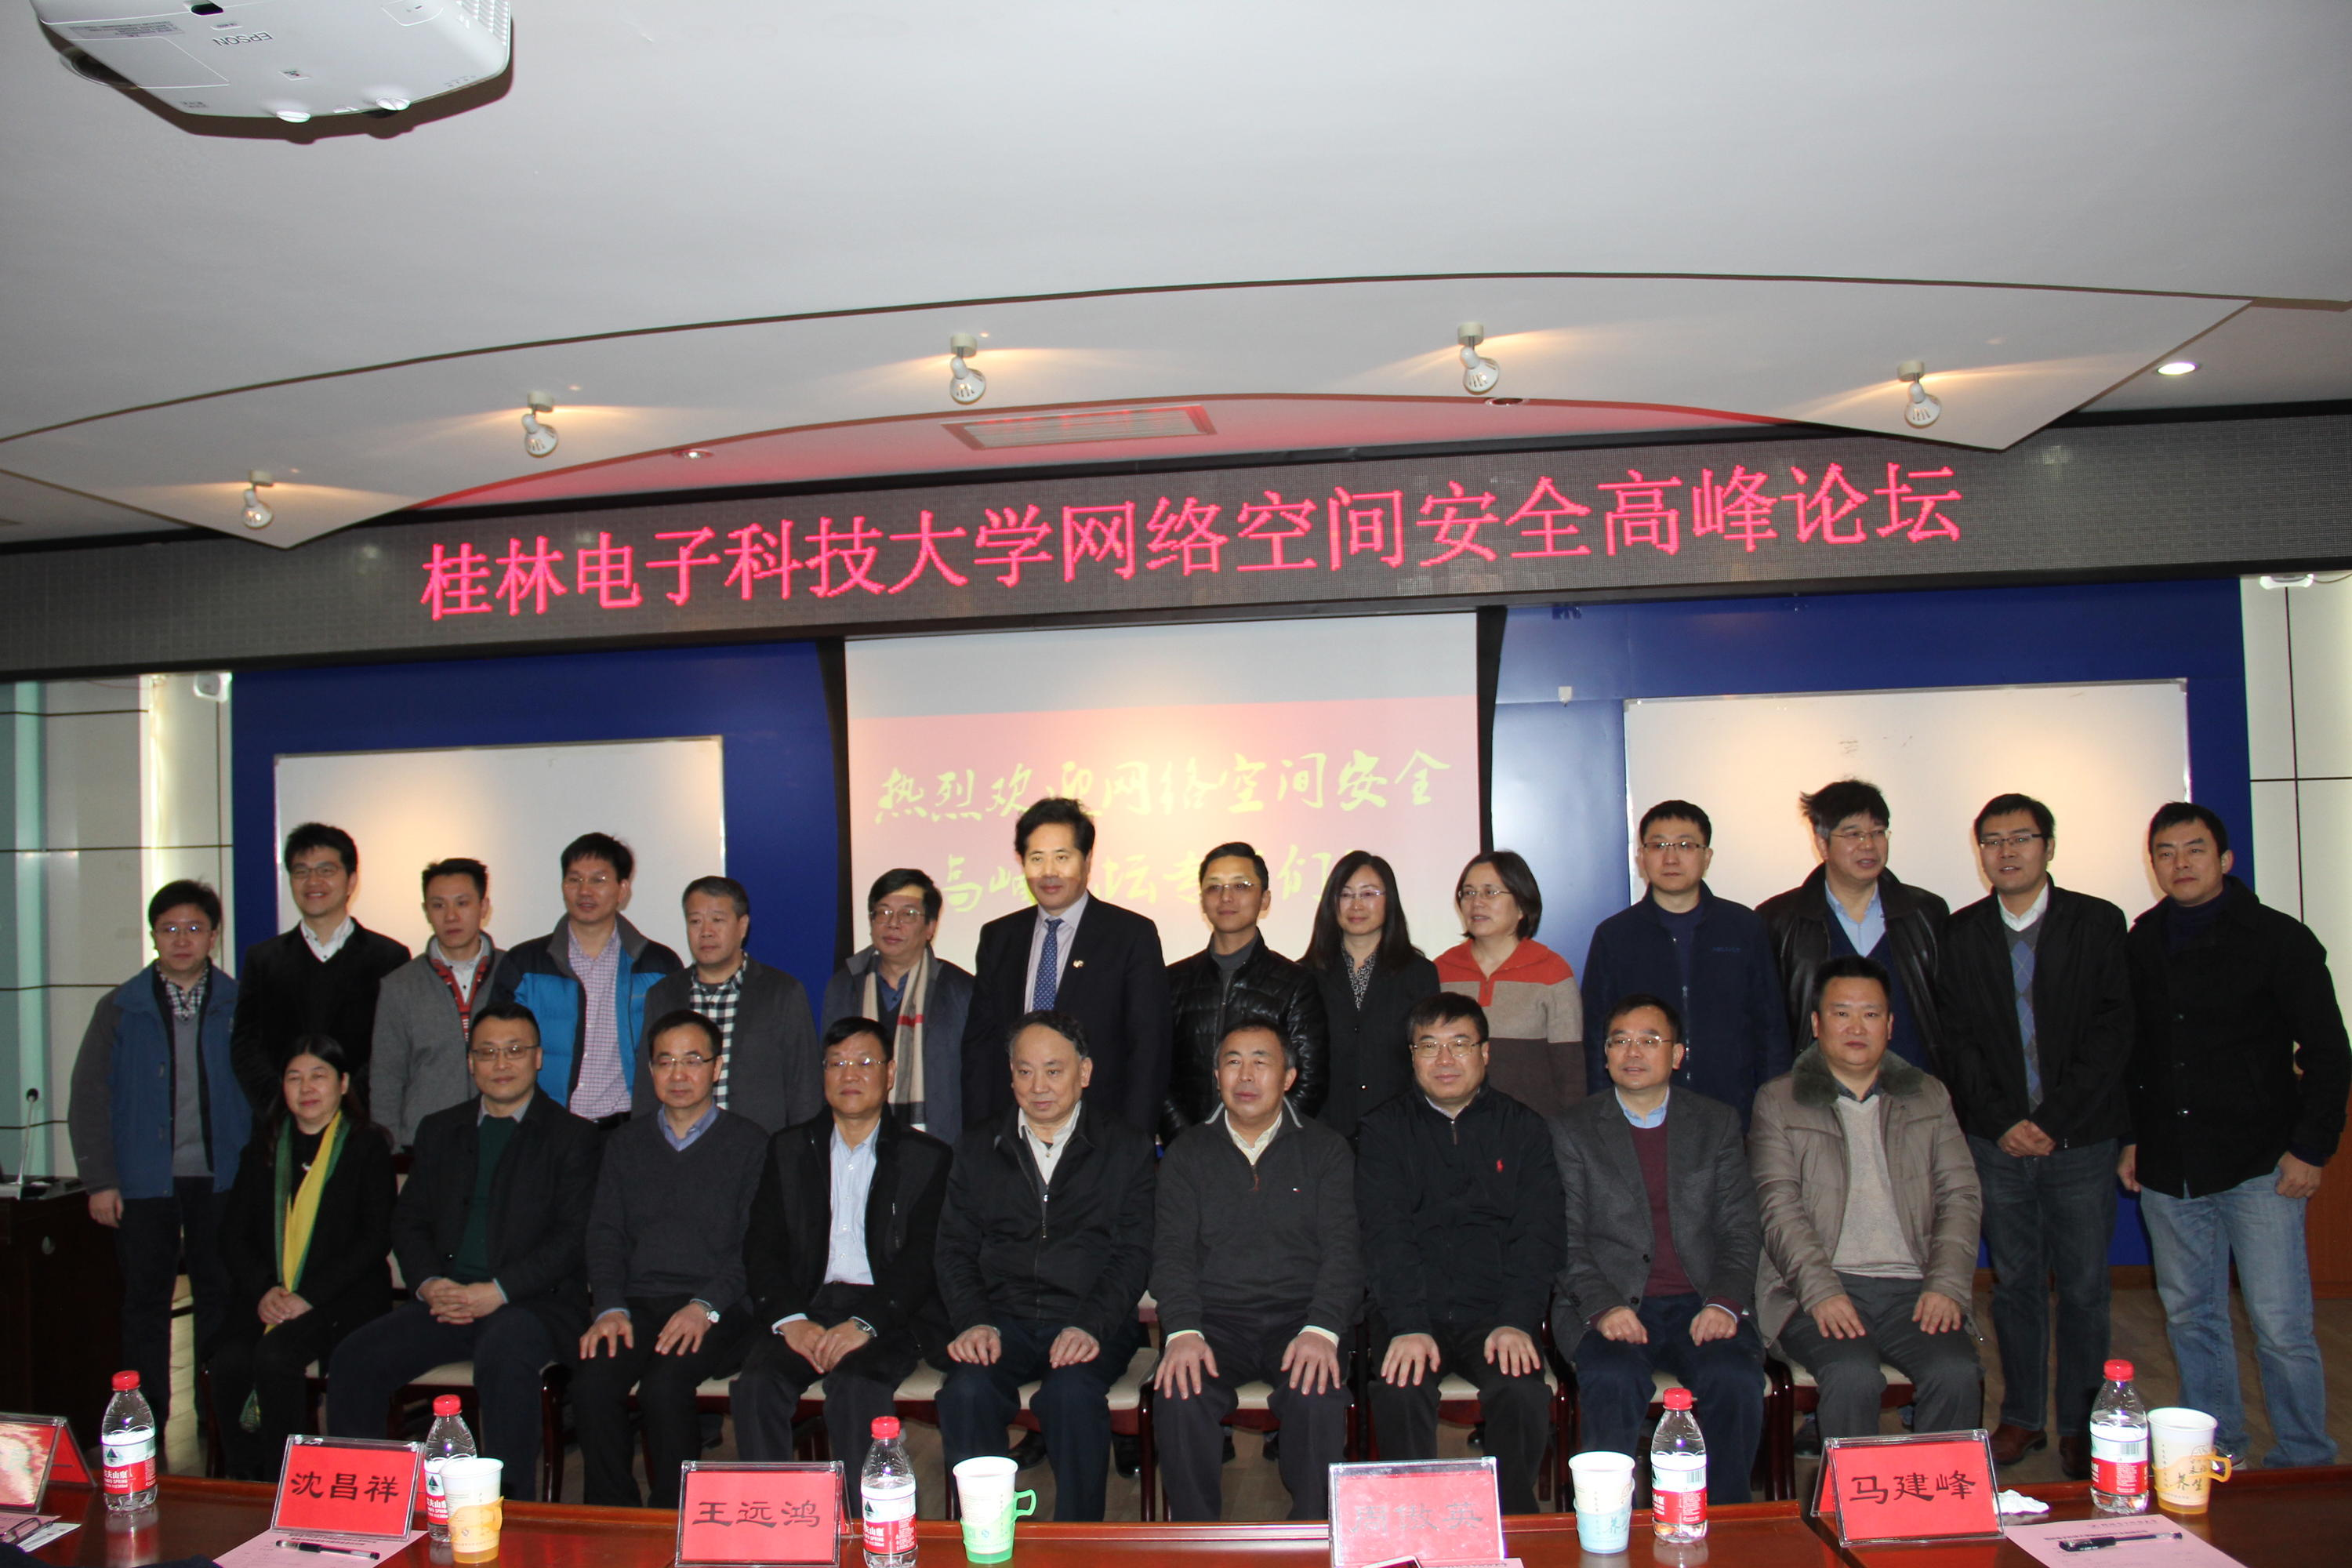 Professor Shen, Profesoor Changxiang Shen, and our former BBCR members attended the Guilin University of Electronic Technology C